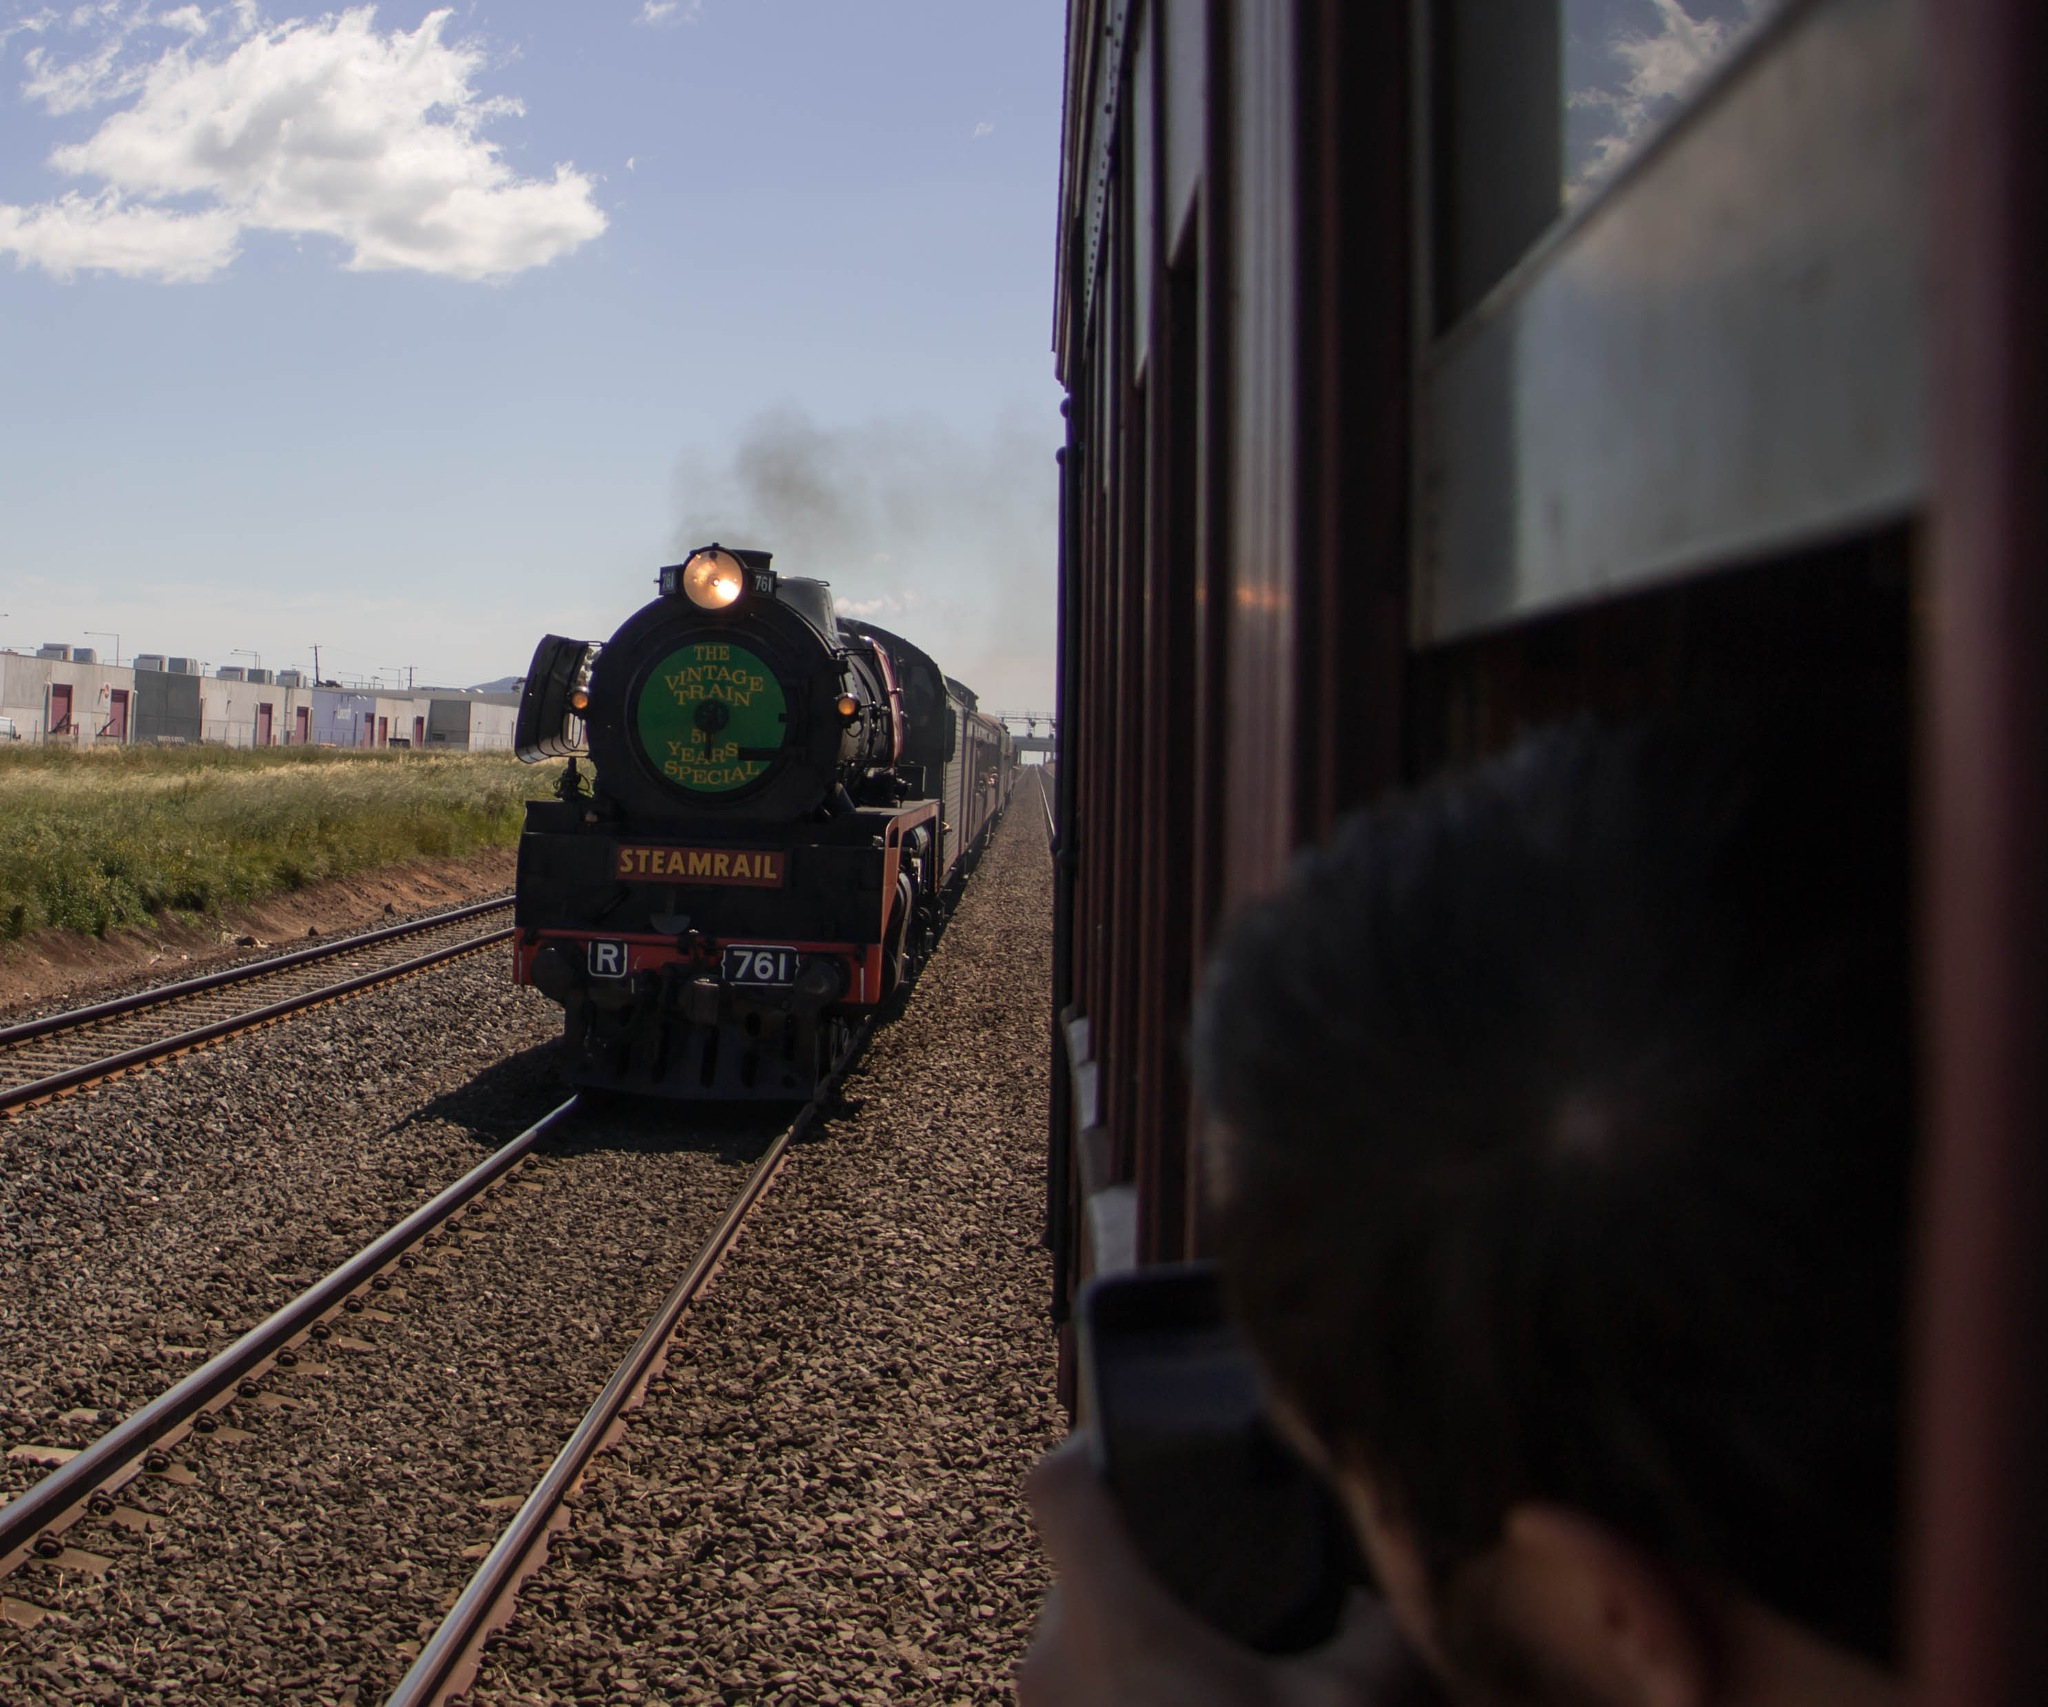 Overtaking an R class steam train between Melbourne and Geelong by tastigr